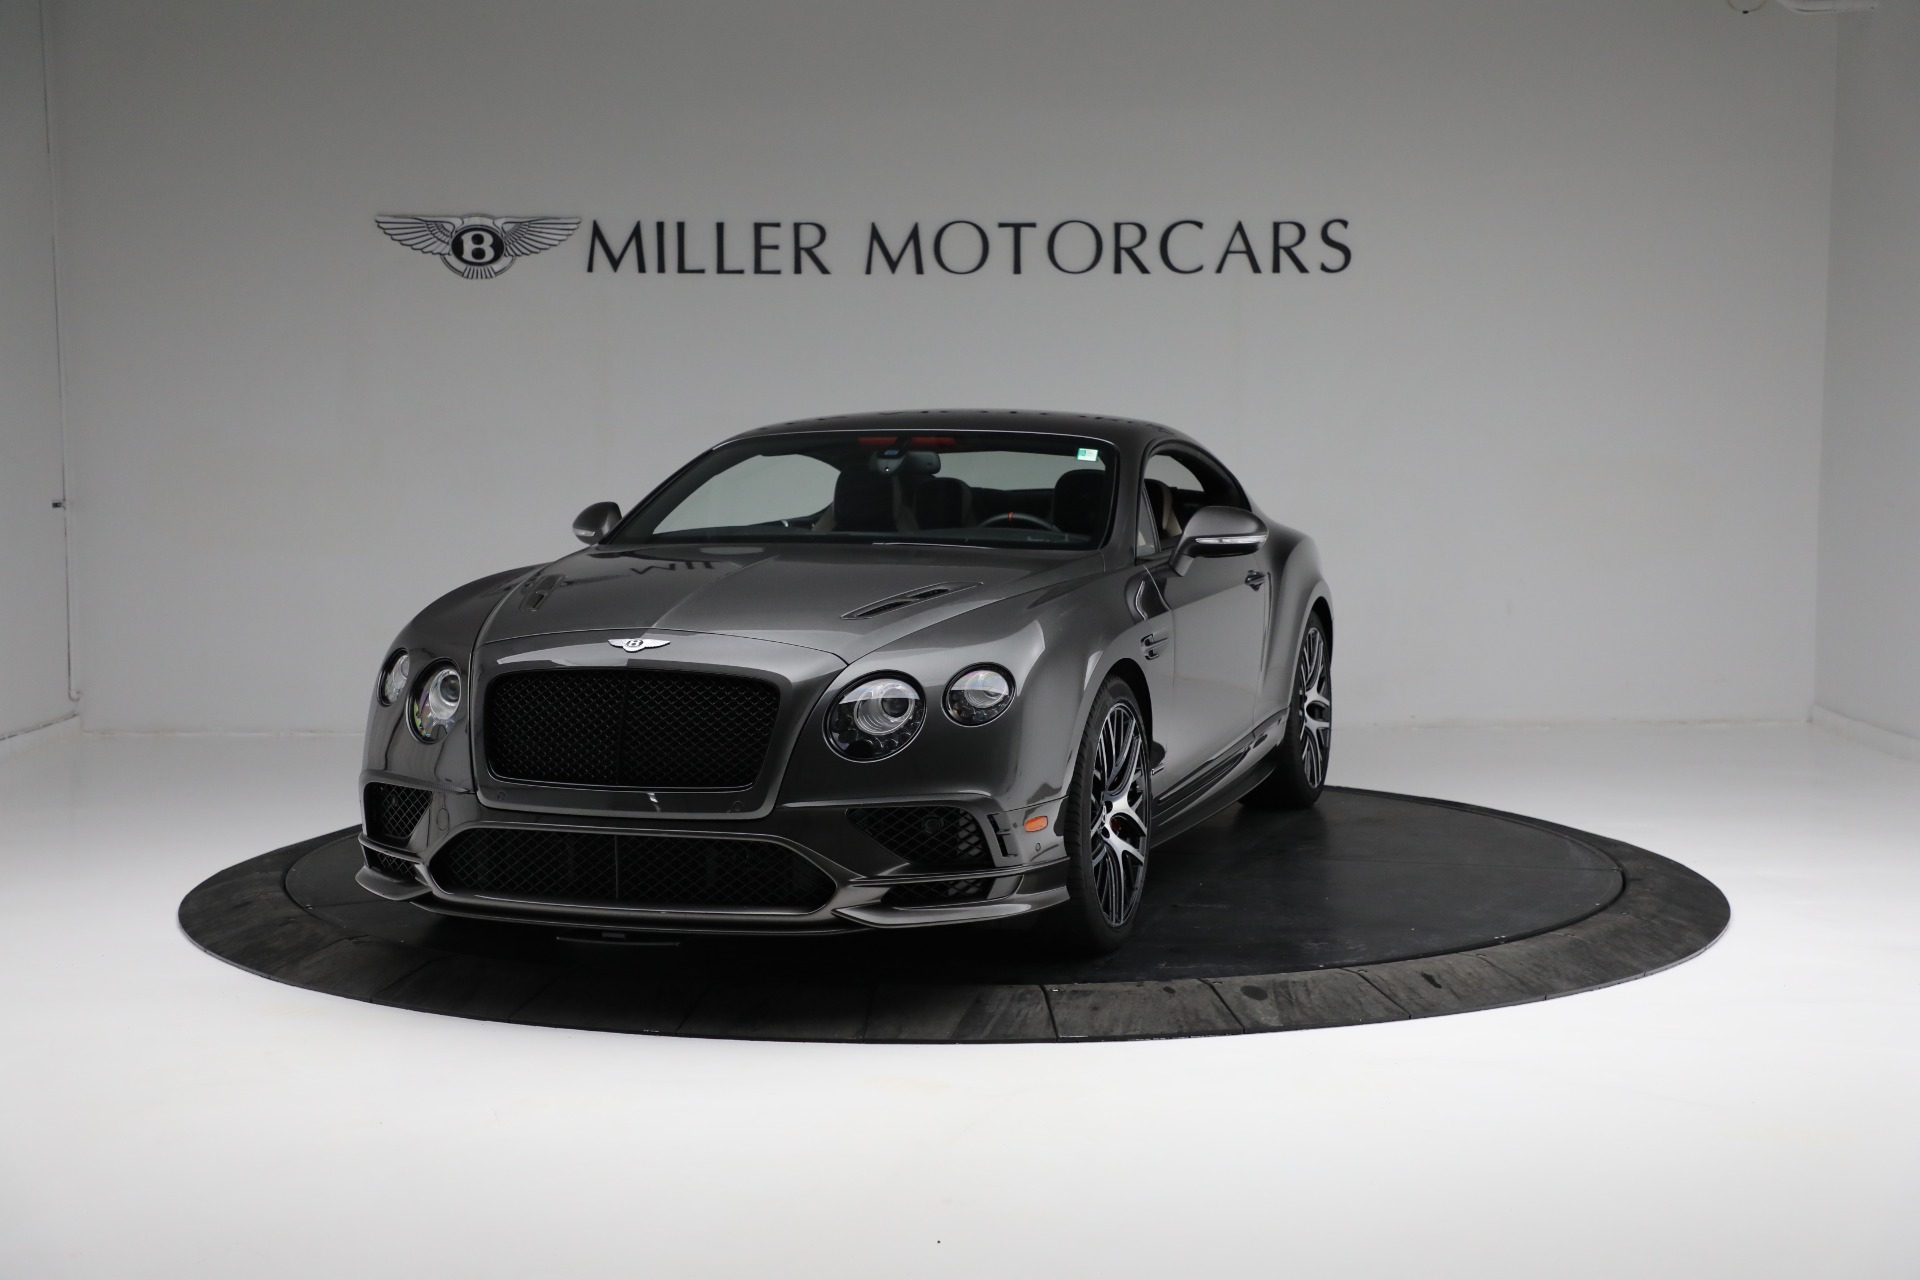 Used 2017 Bentley Continental GT Supersports for sale Sold at Bentley Greenwich in Greenwich CT 06830 1